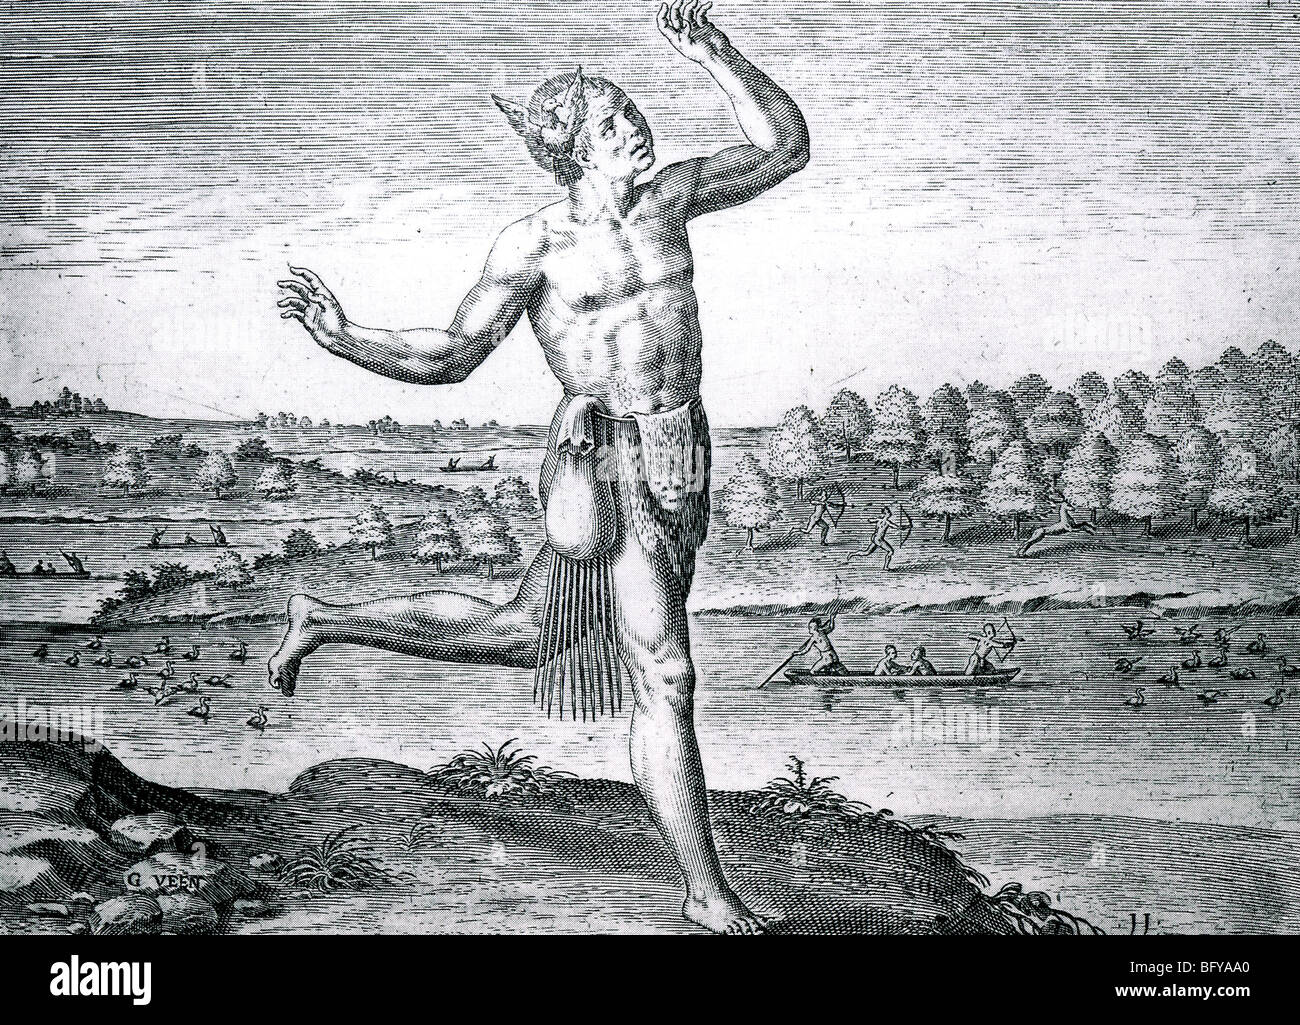 THE NOBLE SAVAGE Engraving based on drawing by John White during an expedition to Roanoke Island, of Virginia, in - Stock Image